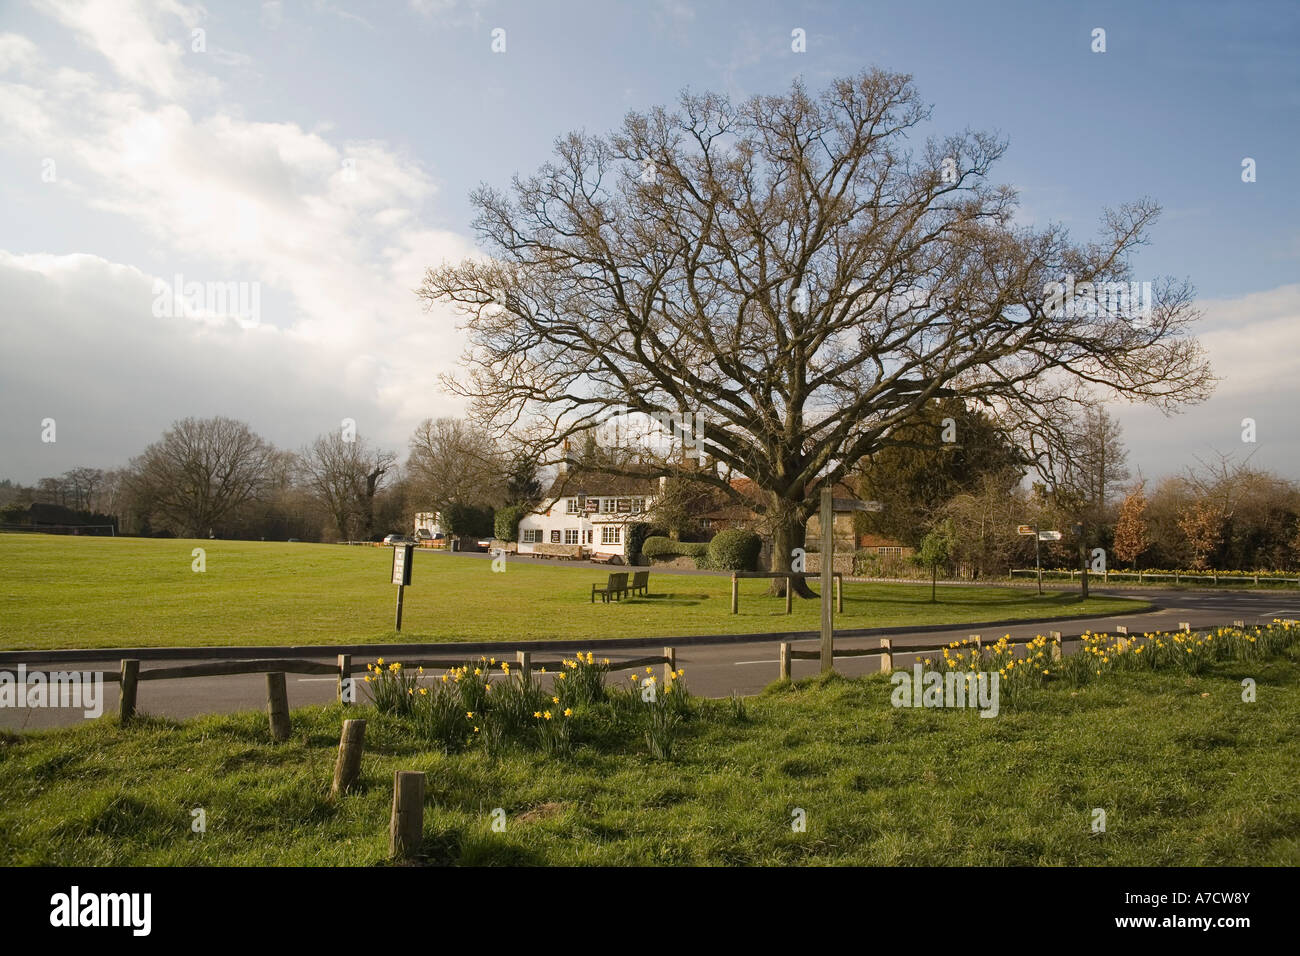 TILFORD SURREY UK March Looking across the daffodil surrounded village green towards the popular Barley Mow Pub - Stock Image